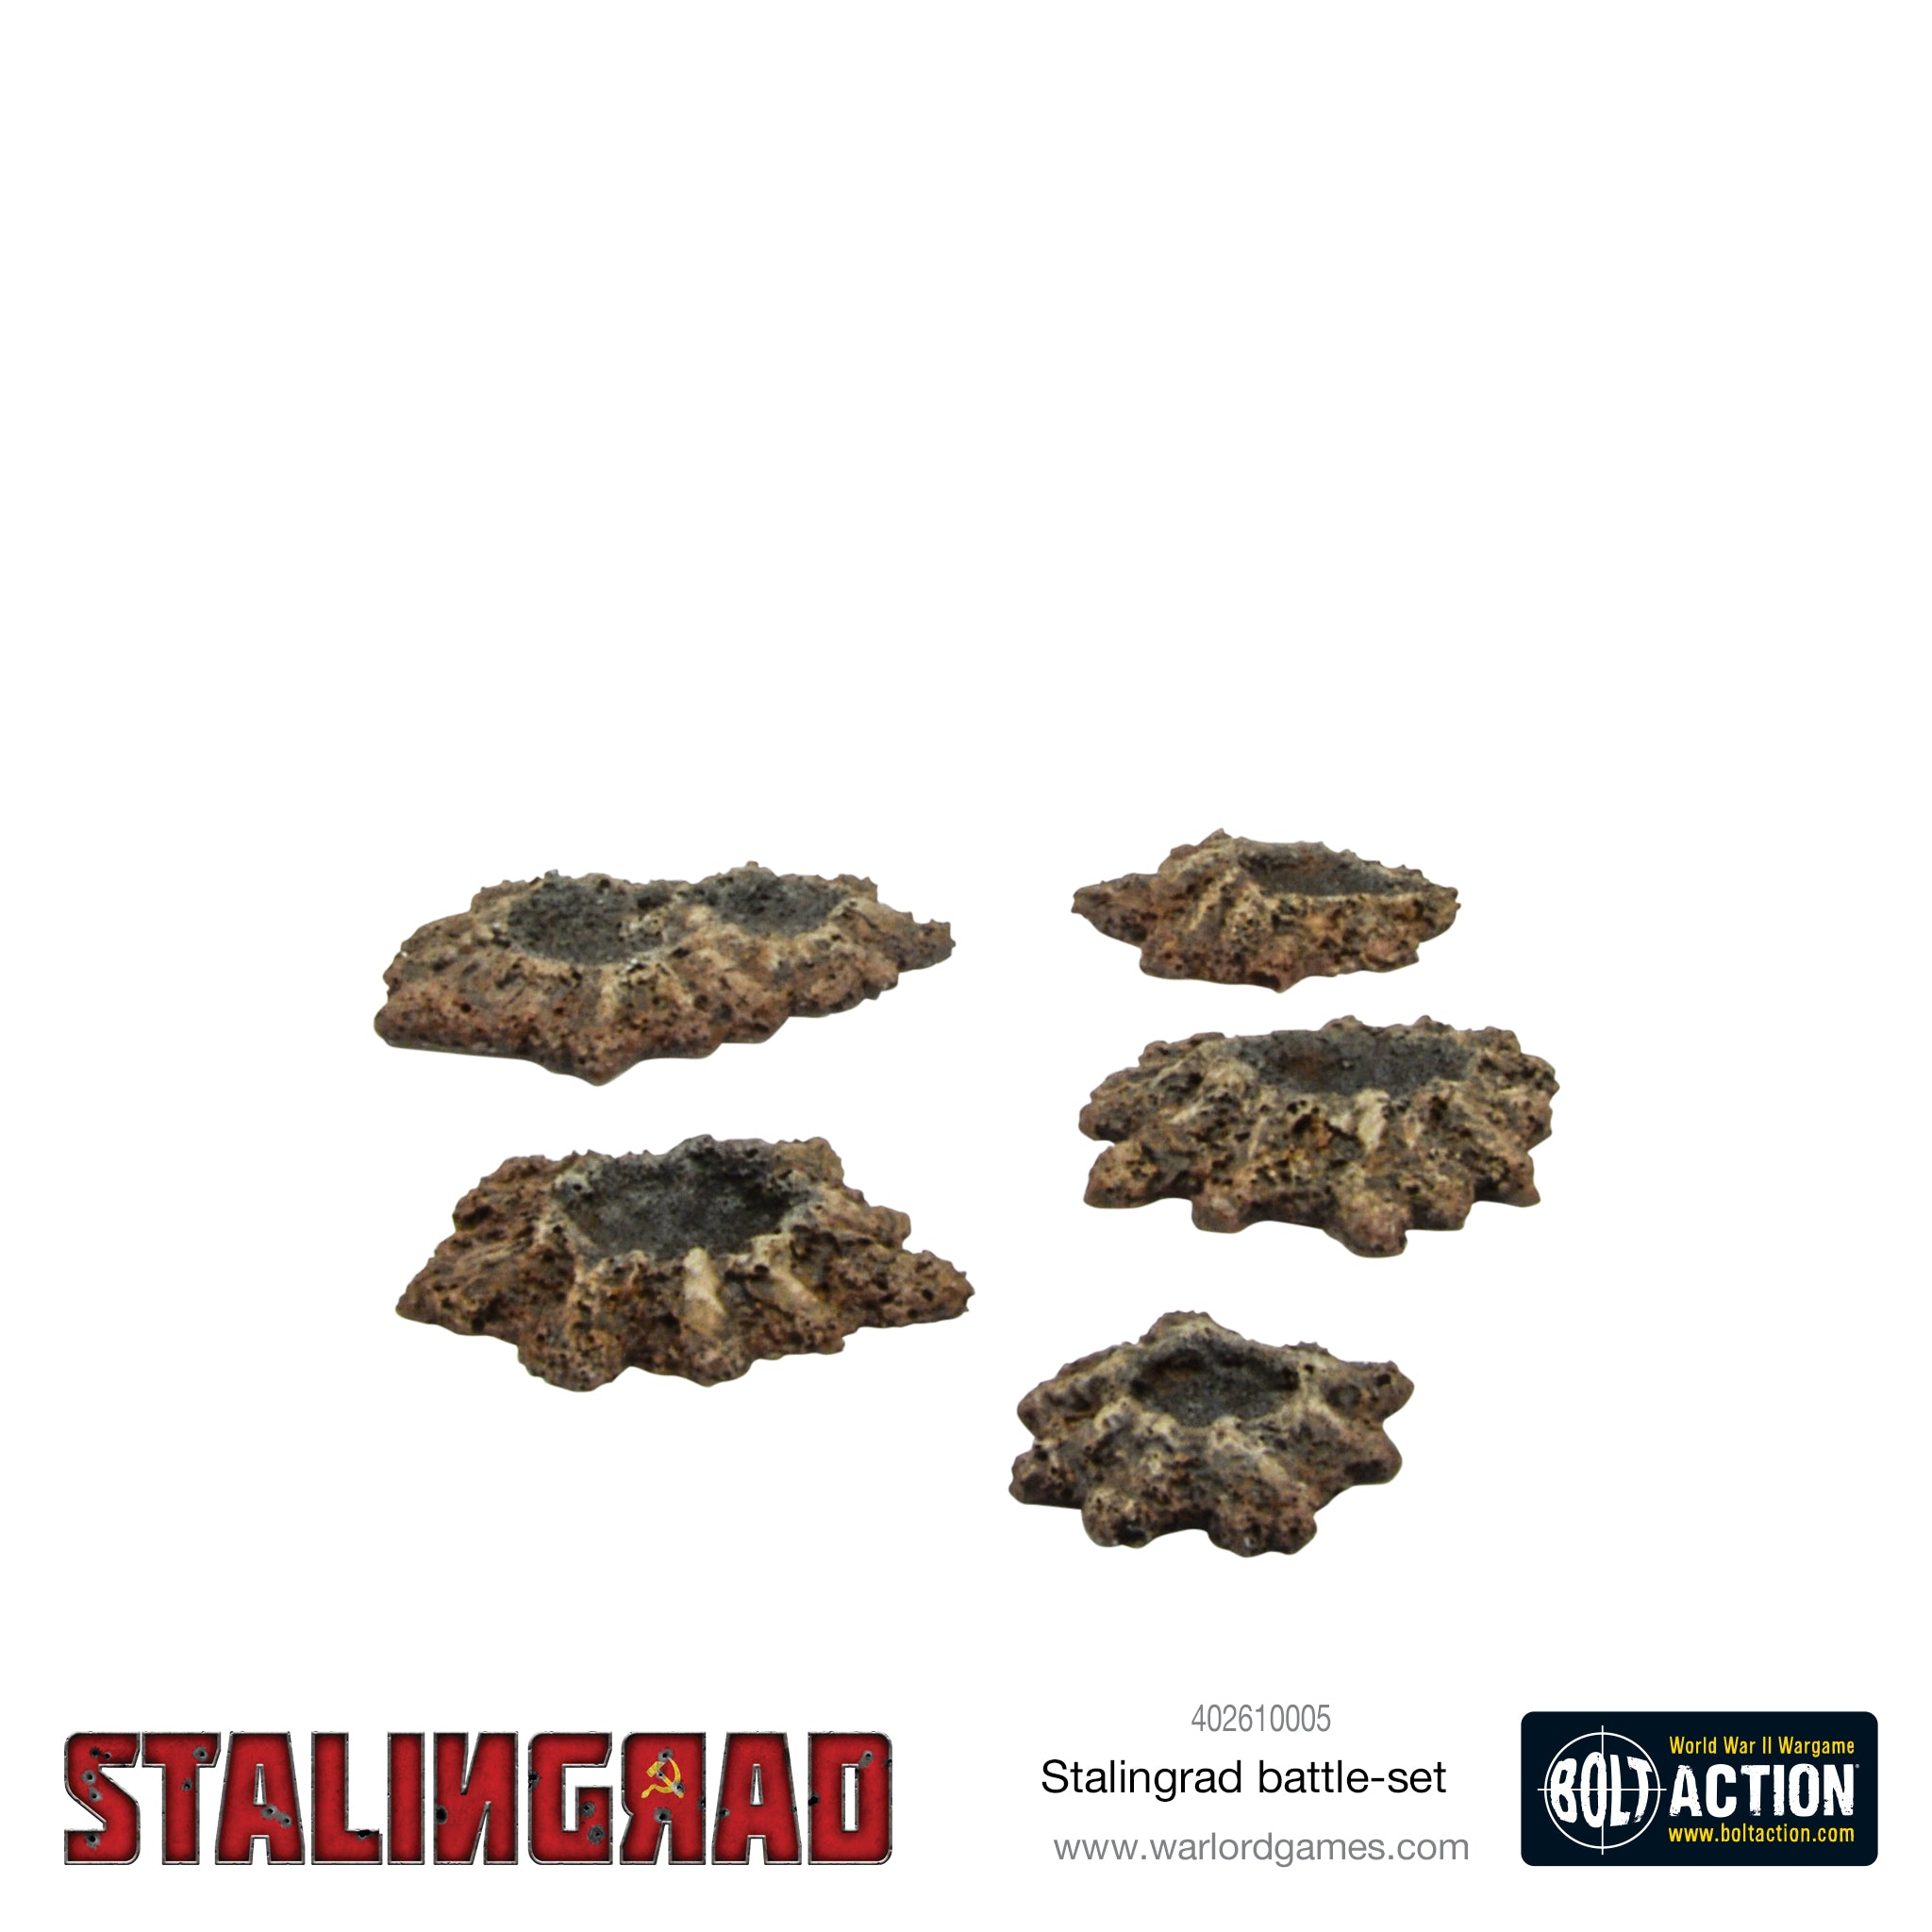 Stalingrad battle-set